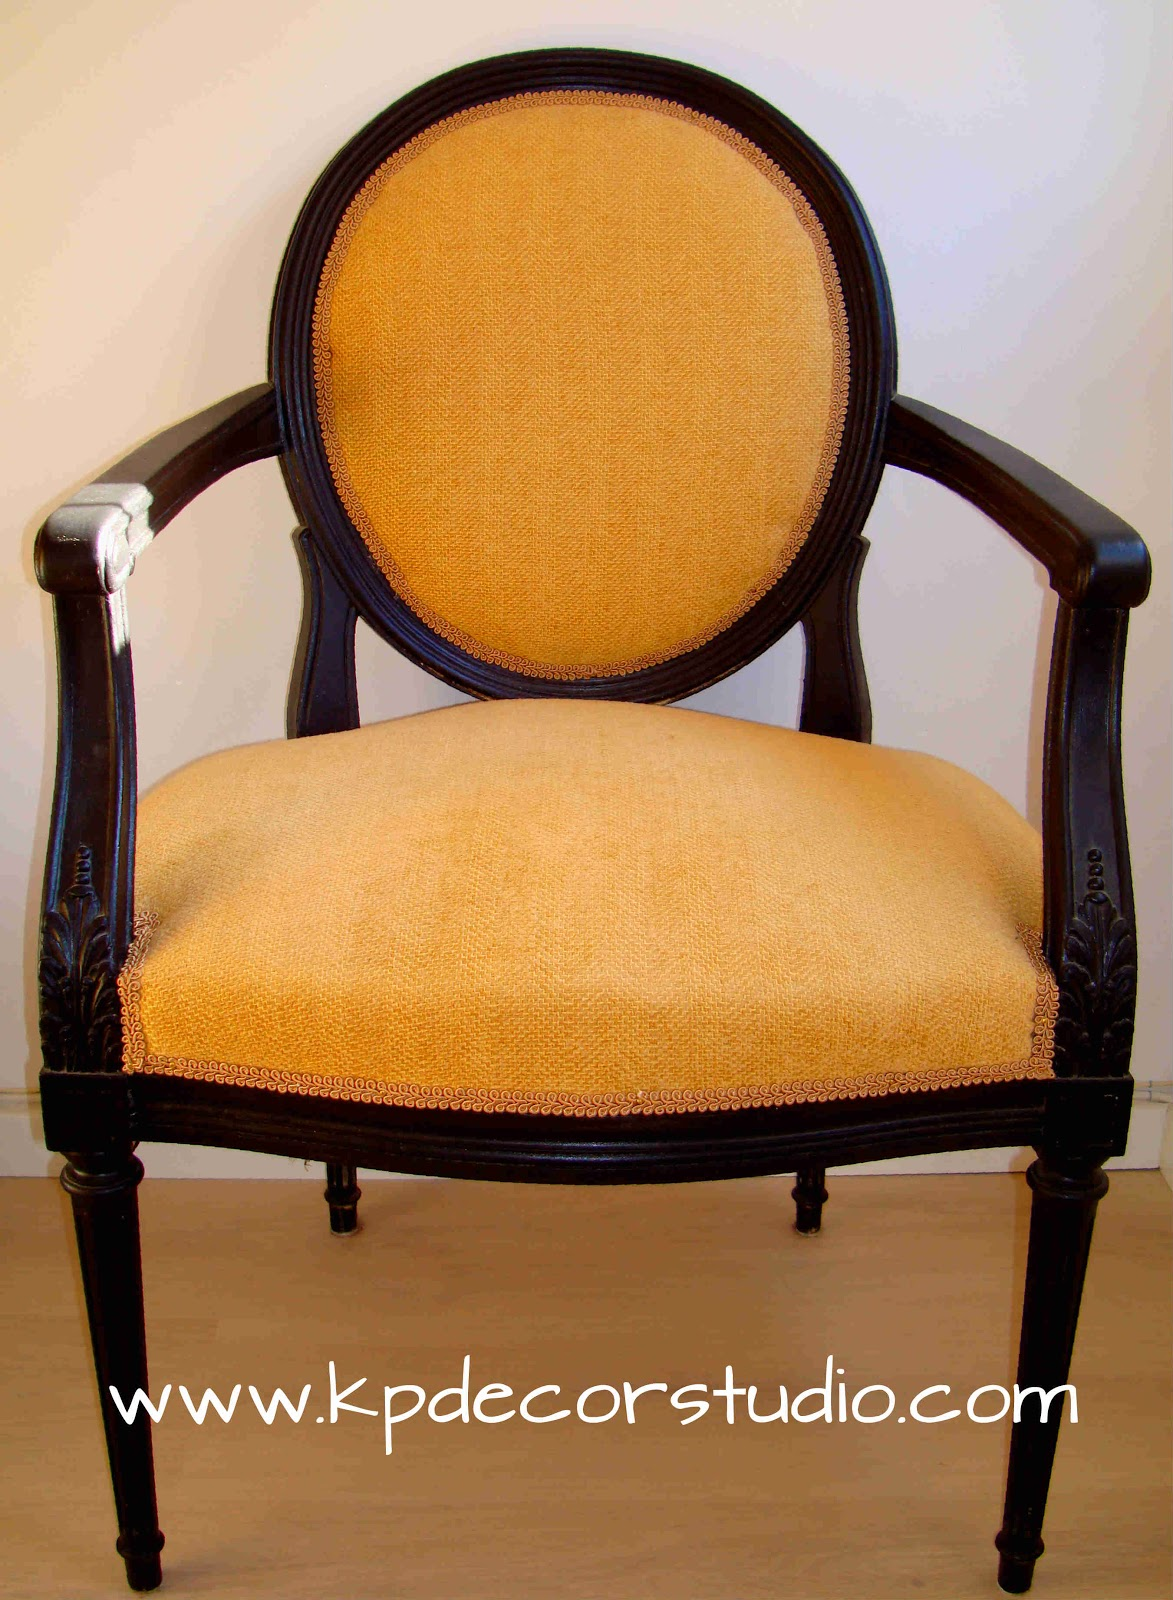 Cheap Chairs For Sale Wooden Lawn Chair Kp Tienda Vintage Online: Sillón Luis Xvi A La Venta** Louis Armchair